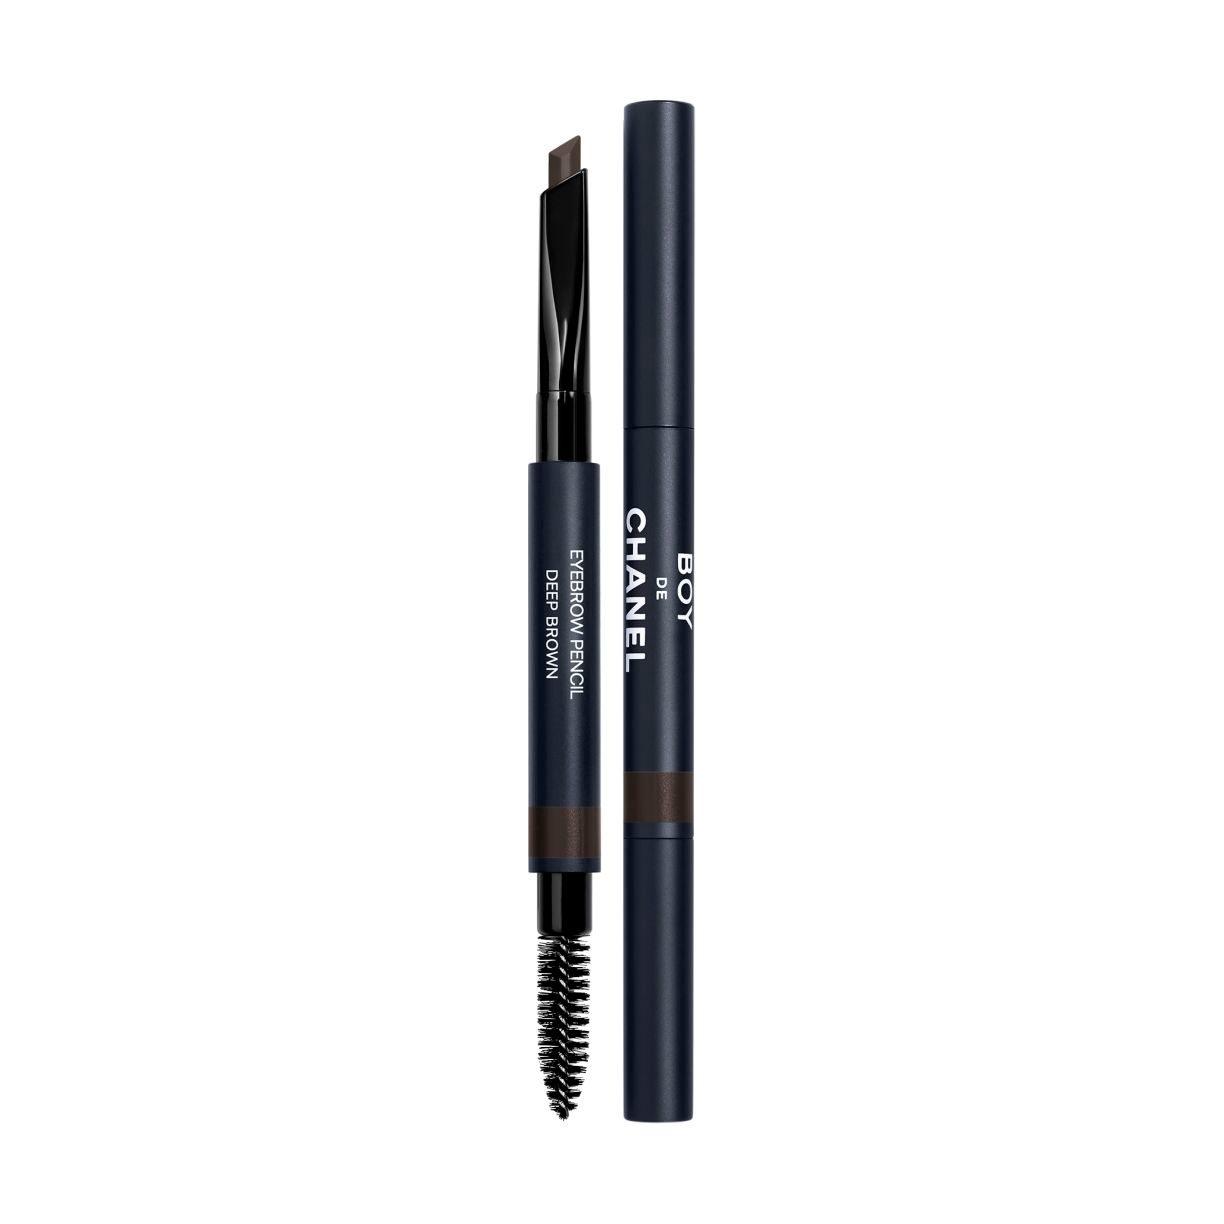 BOY DE CHANEL LE STYLO SOURCILS LANGHOUDEND WATERPROOF WENKBRAUWPOTLOOD